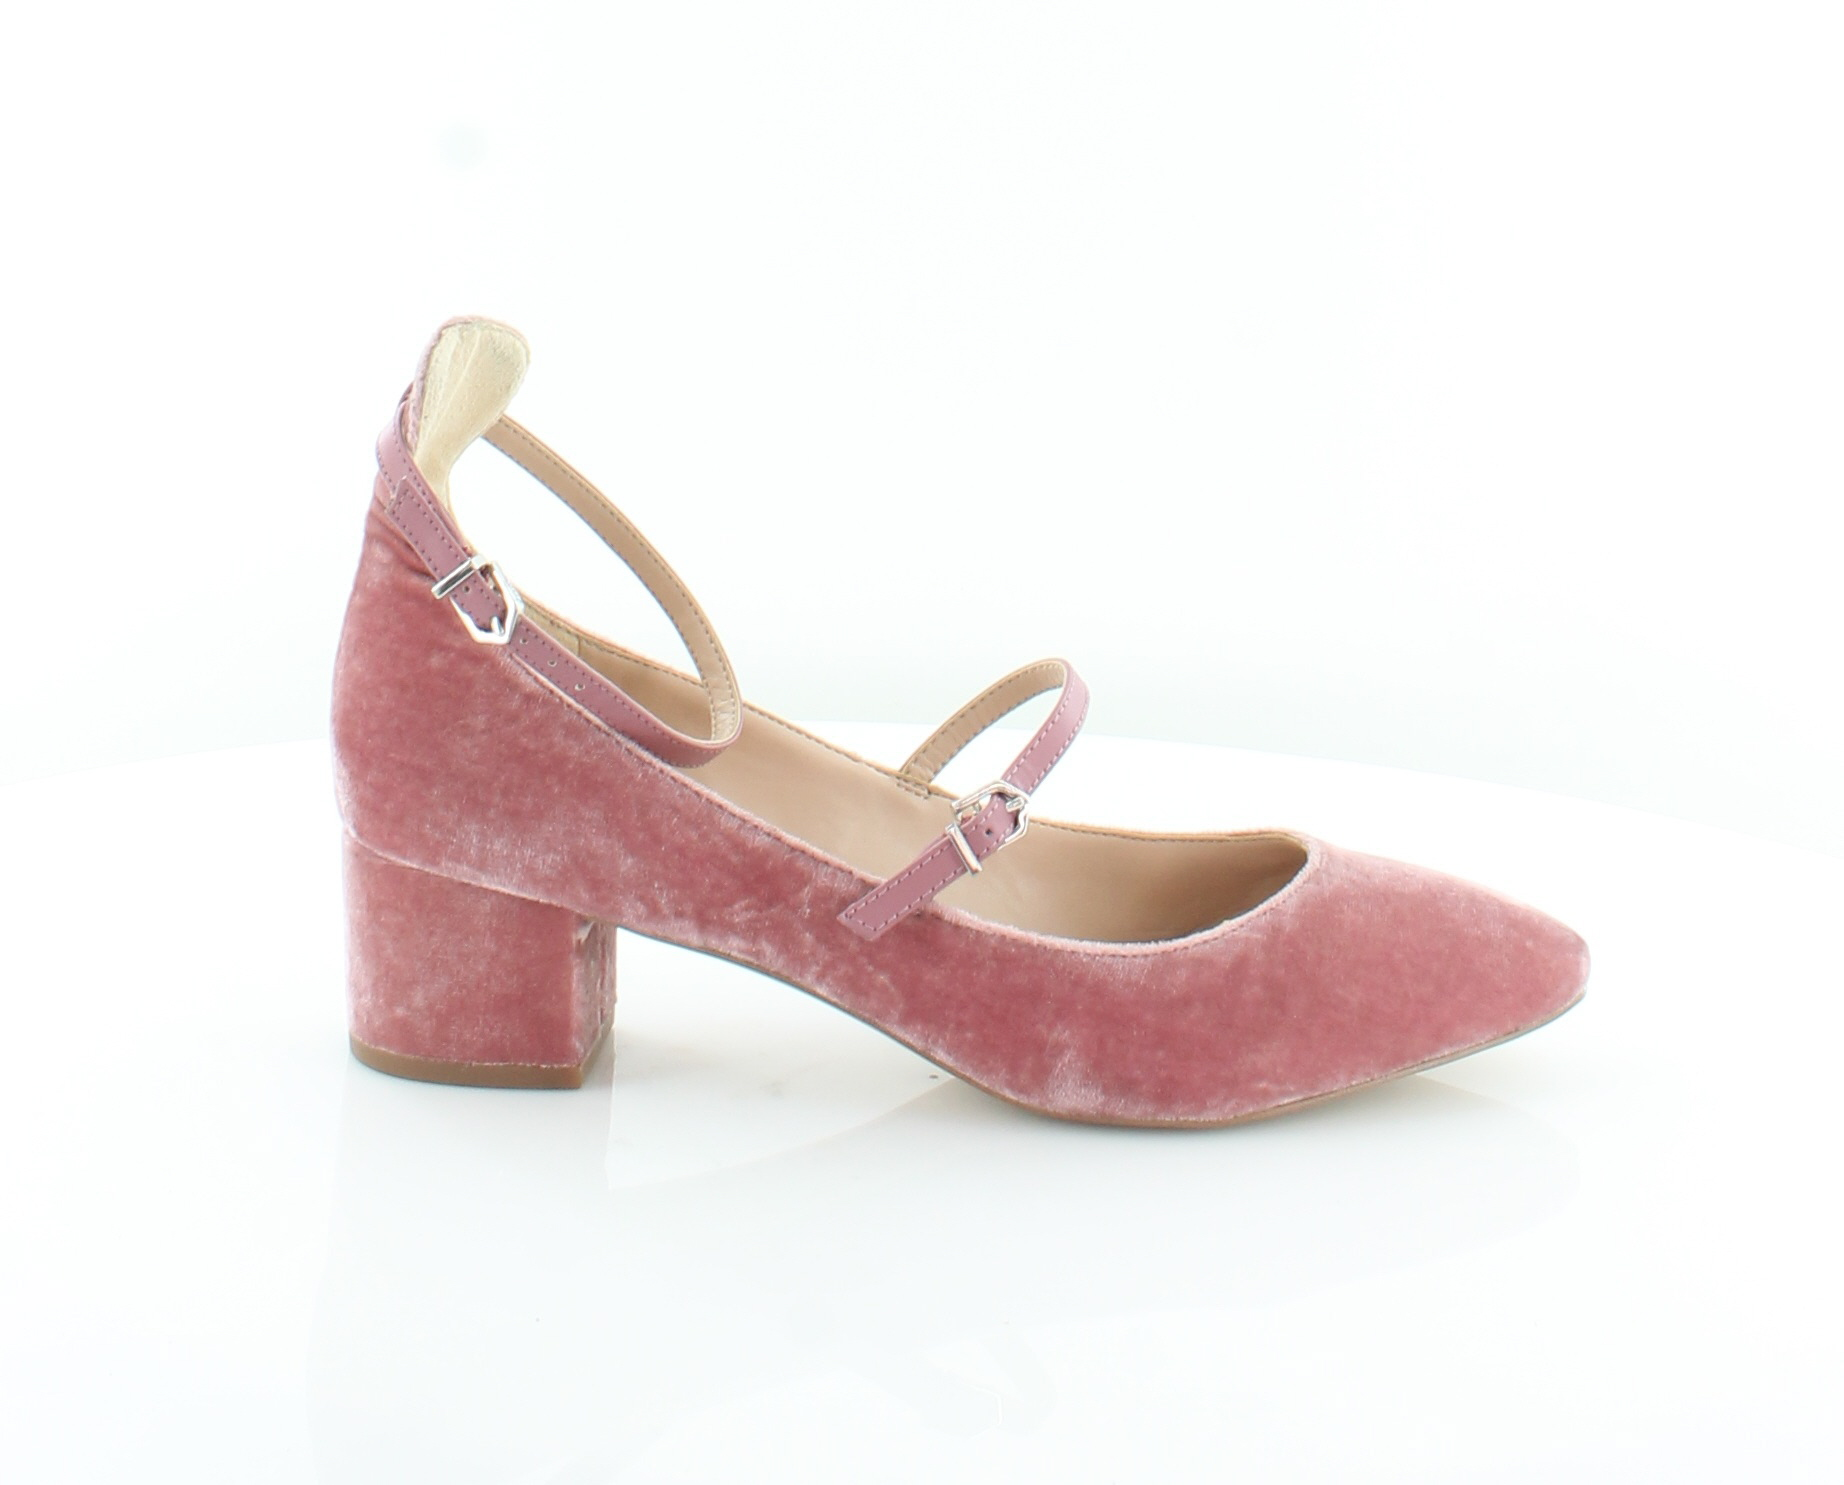 ac2f9fad50f5 Sam Edelman Lulie Pink Womens Shoes Size 8.5 M Sandals MSRP $120 1 of 5FREE  Shipping ...